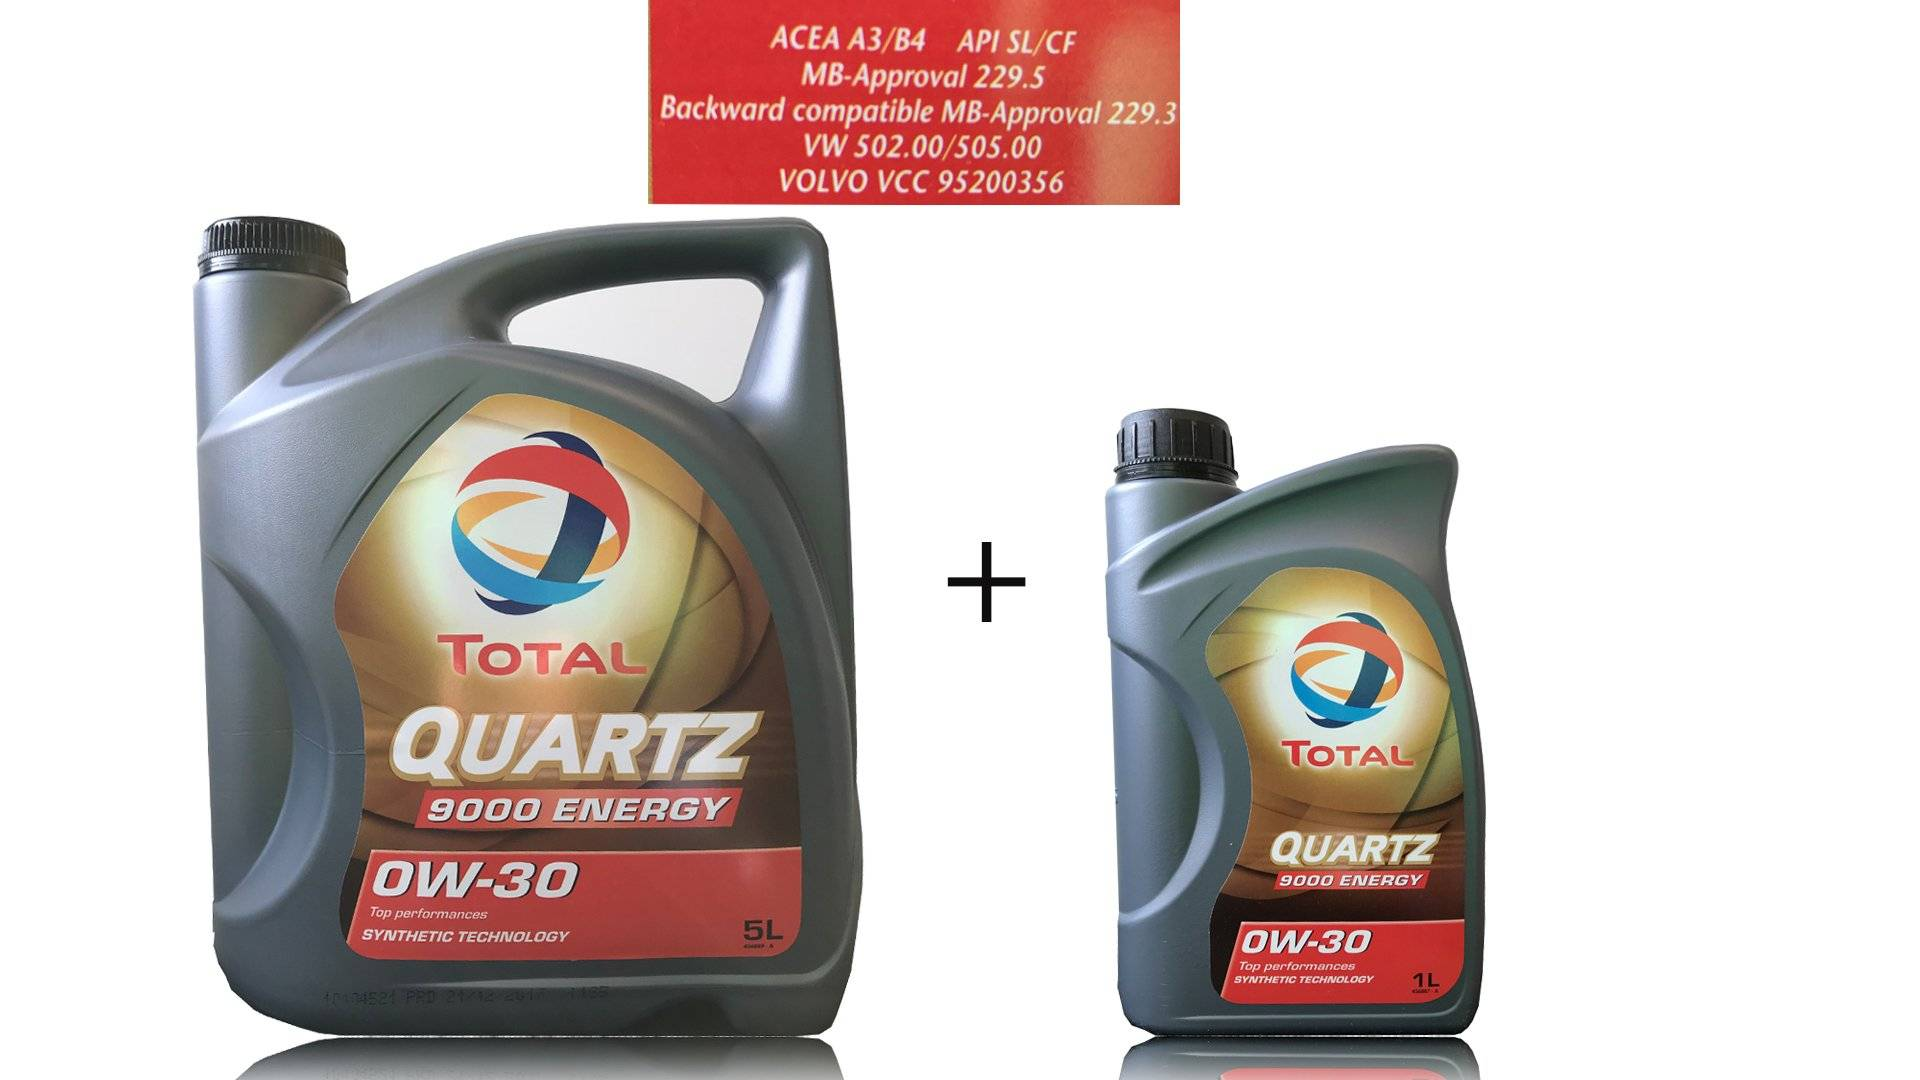 6 LITER MOTORÖL TOTAL QUARTZ 9000 ENERGY 0W-30 von TOTAL_bundle